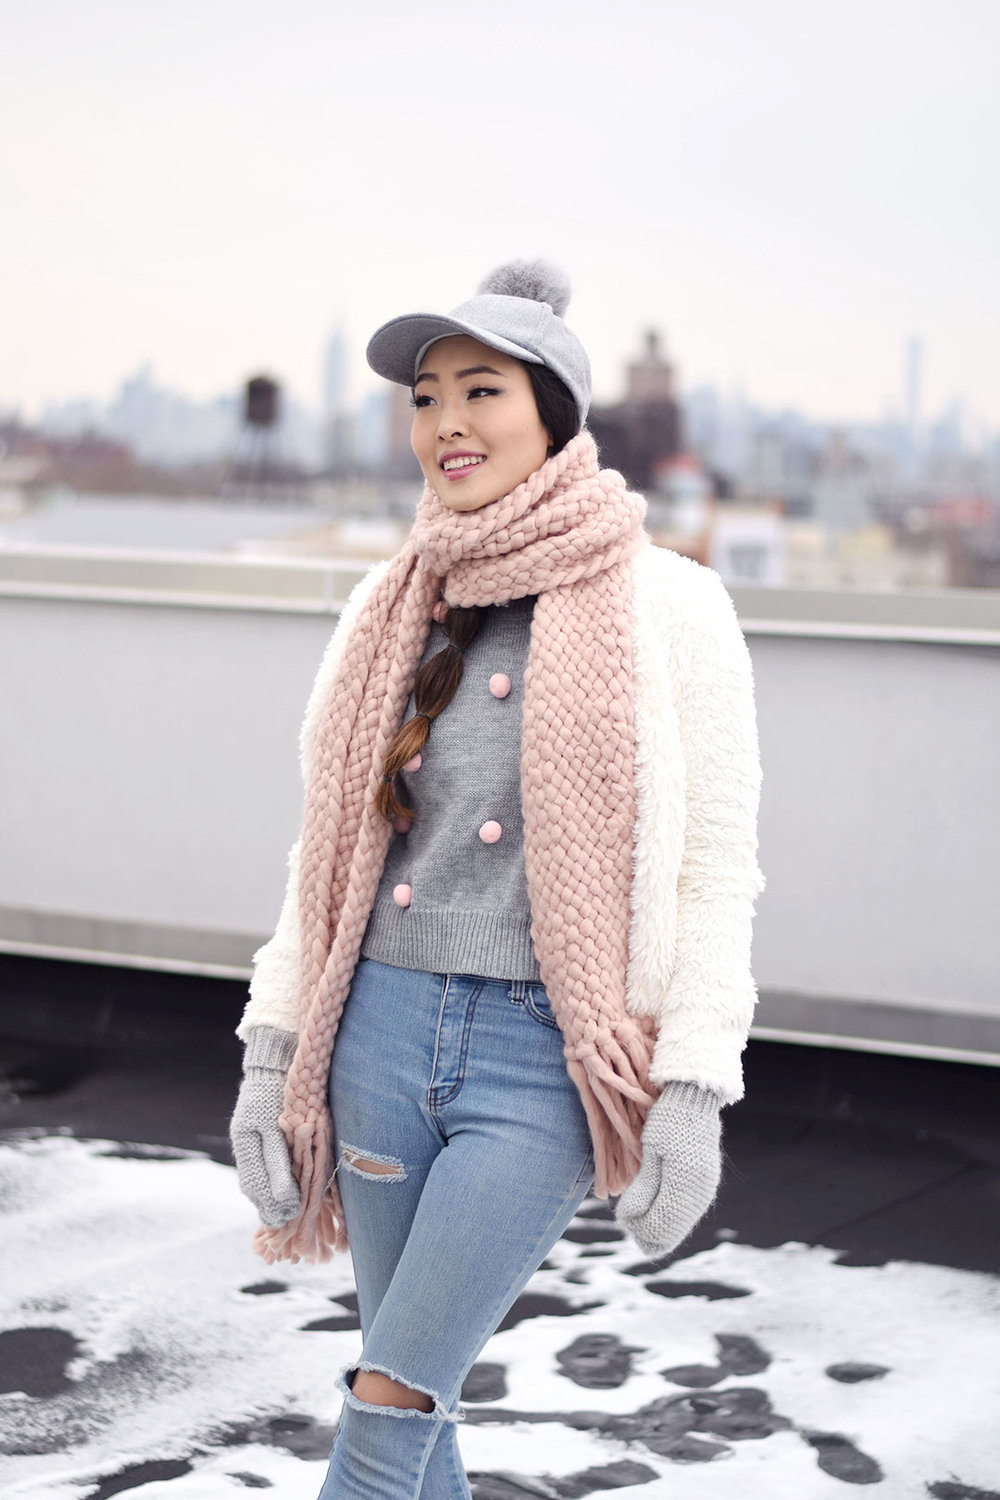 How to Wear the Pom Pom Trend for Winter